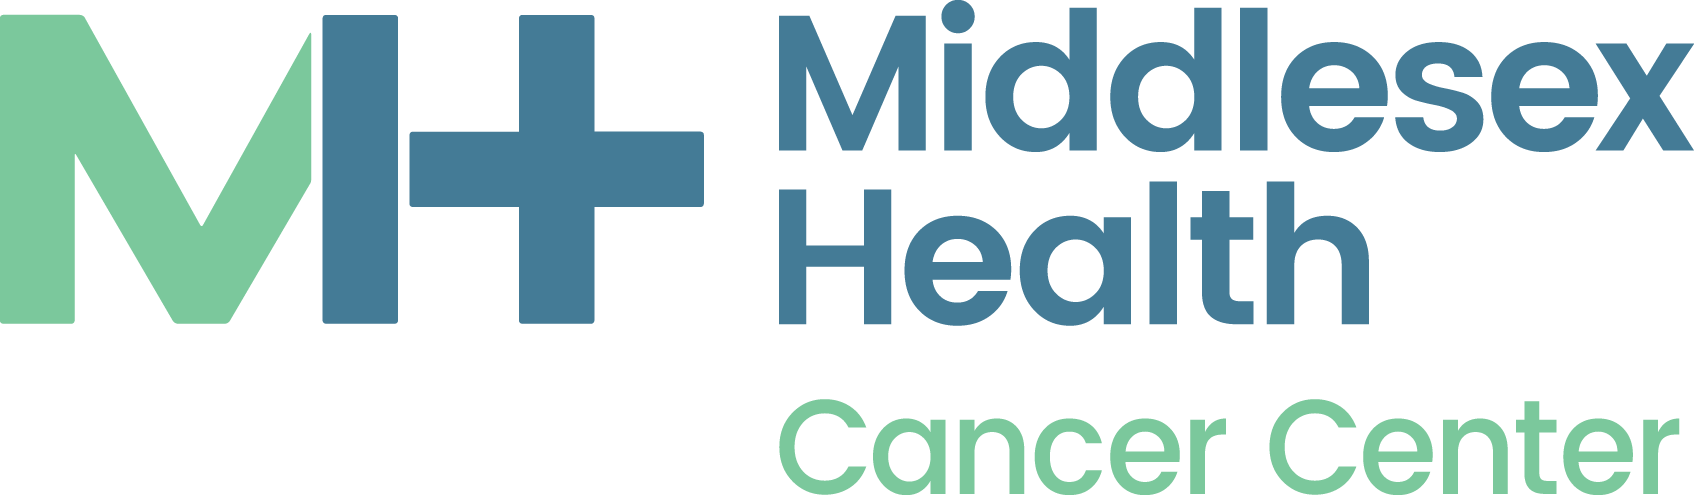 Middlesex Health Logo